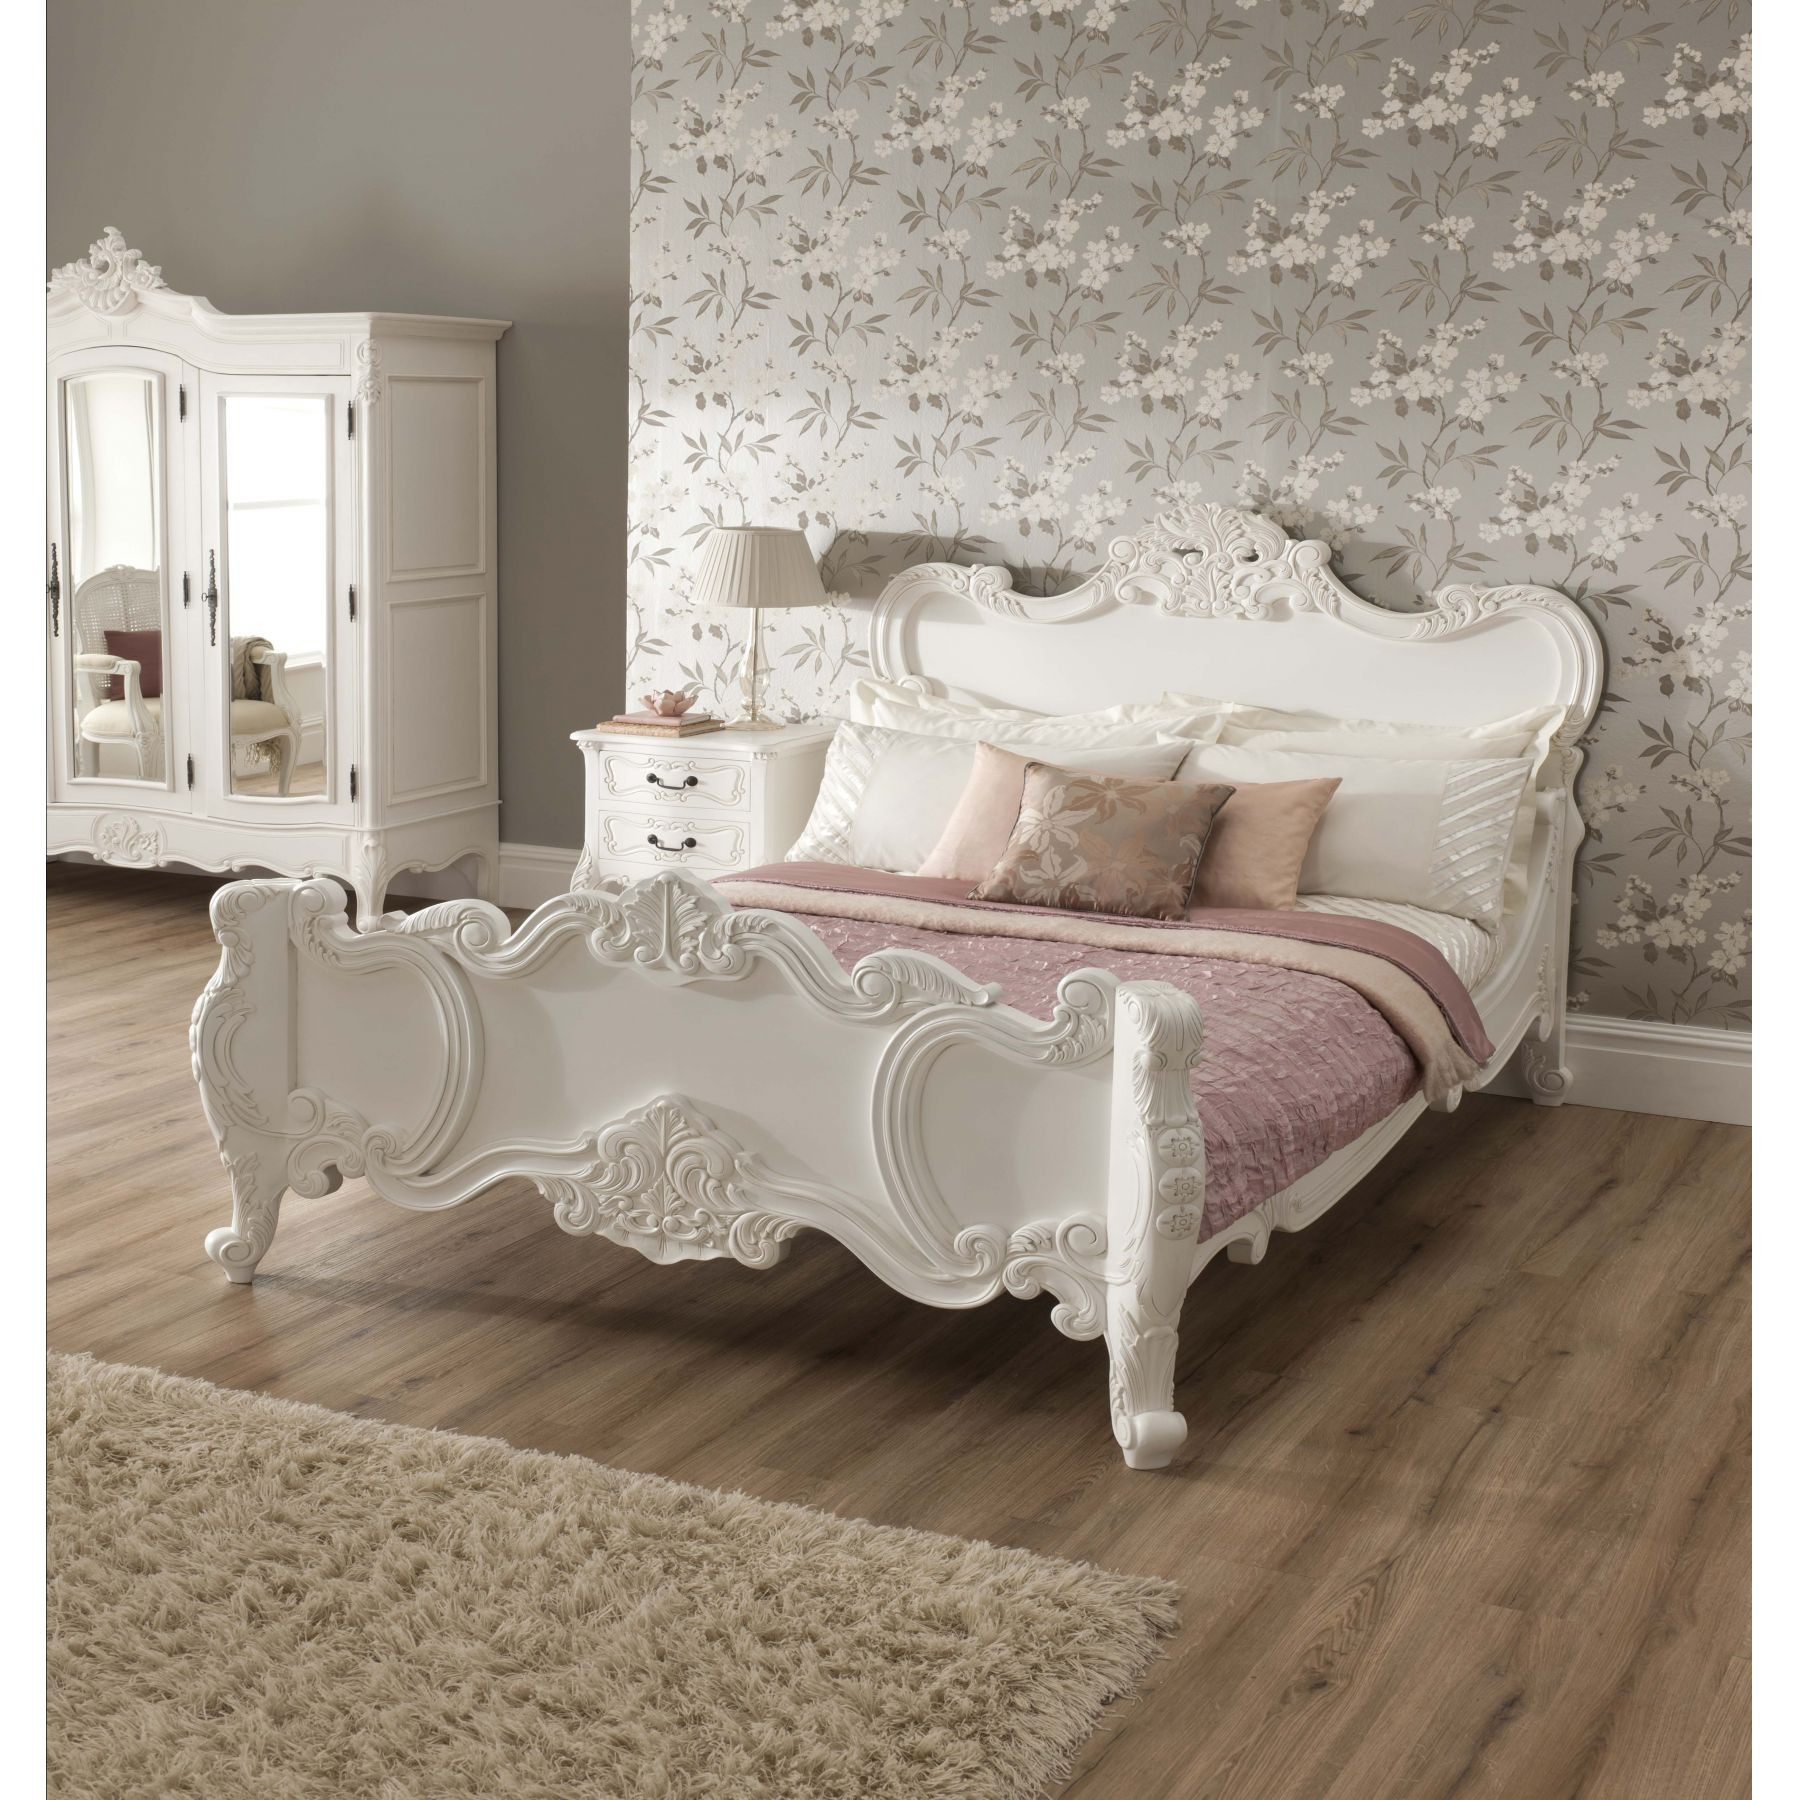 Shabby Chic Bedroom Chair  Vintage Your Room with 9 Shabby Chic Bedroom Furniture